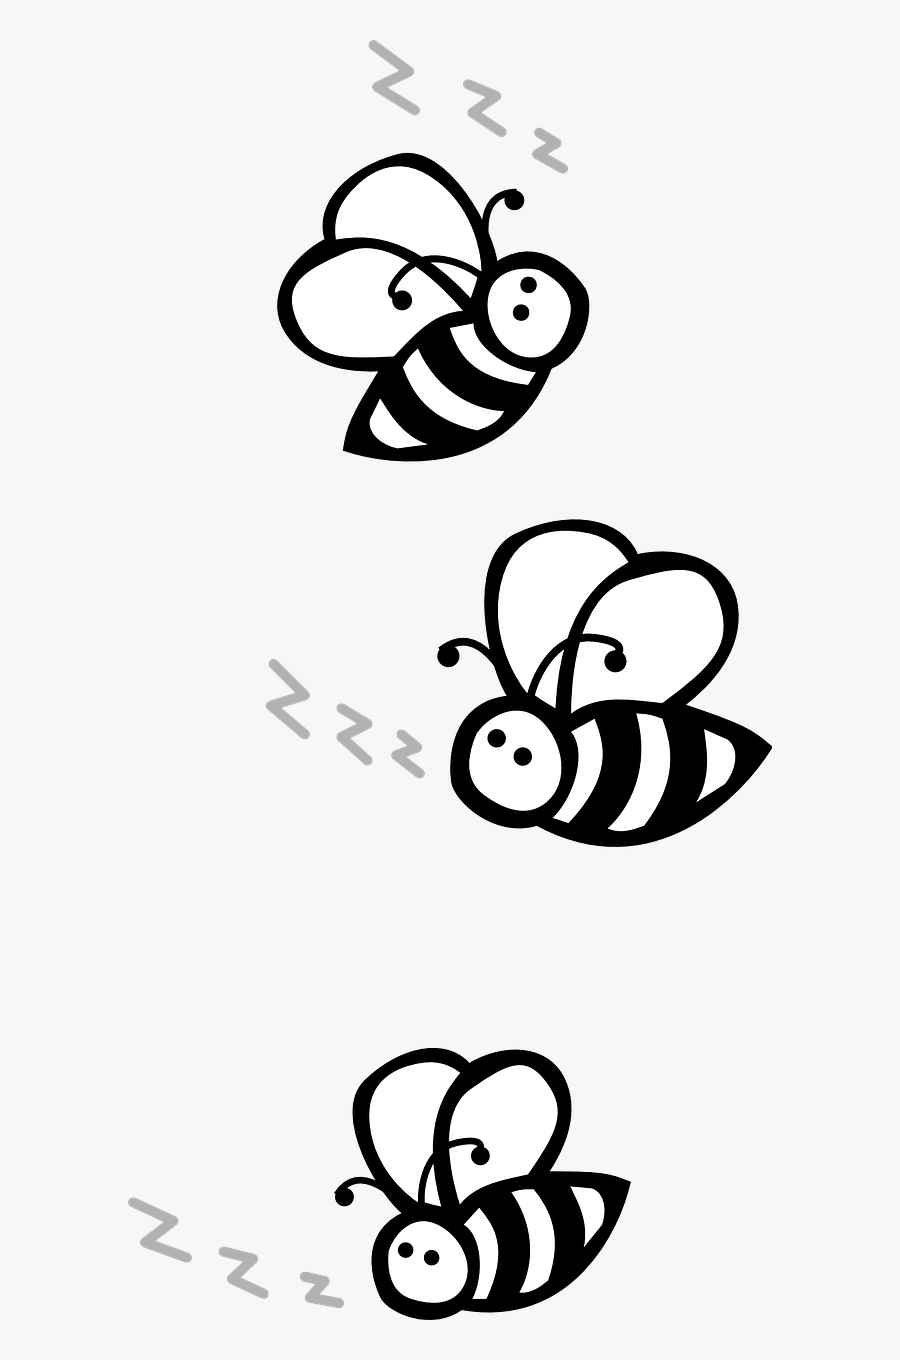 Bees Flying Black And White Free Picture - Bees Clip Art Black And White, Transparent Clipart